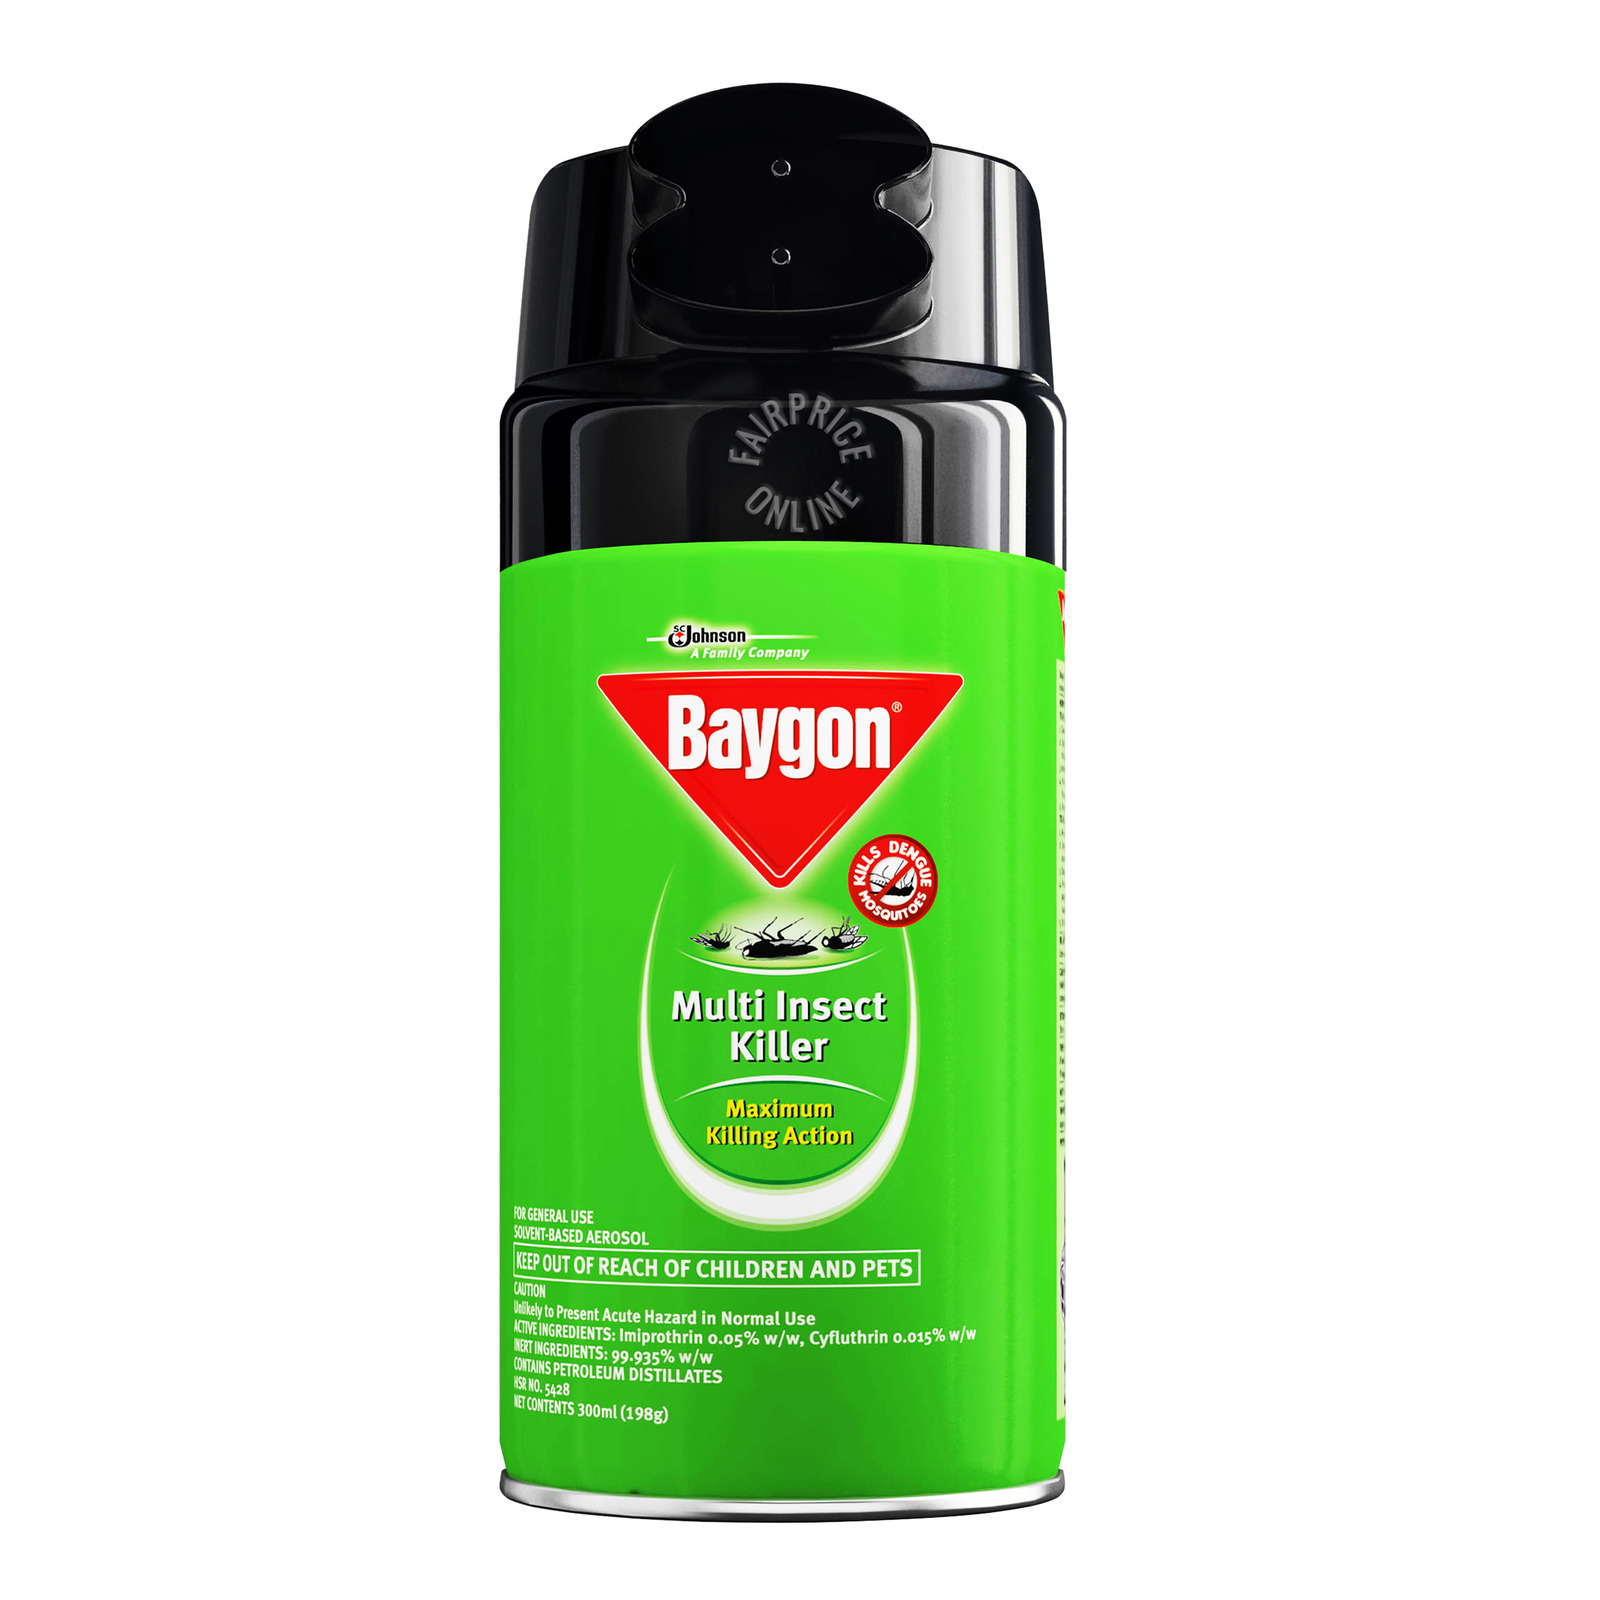 Baygon Multi Insect Killer